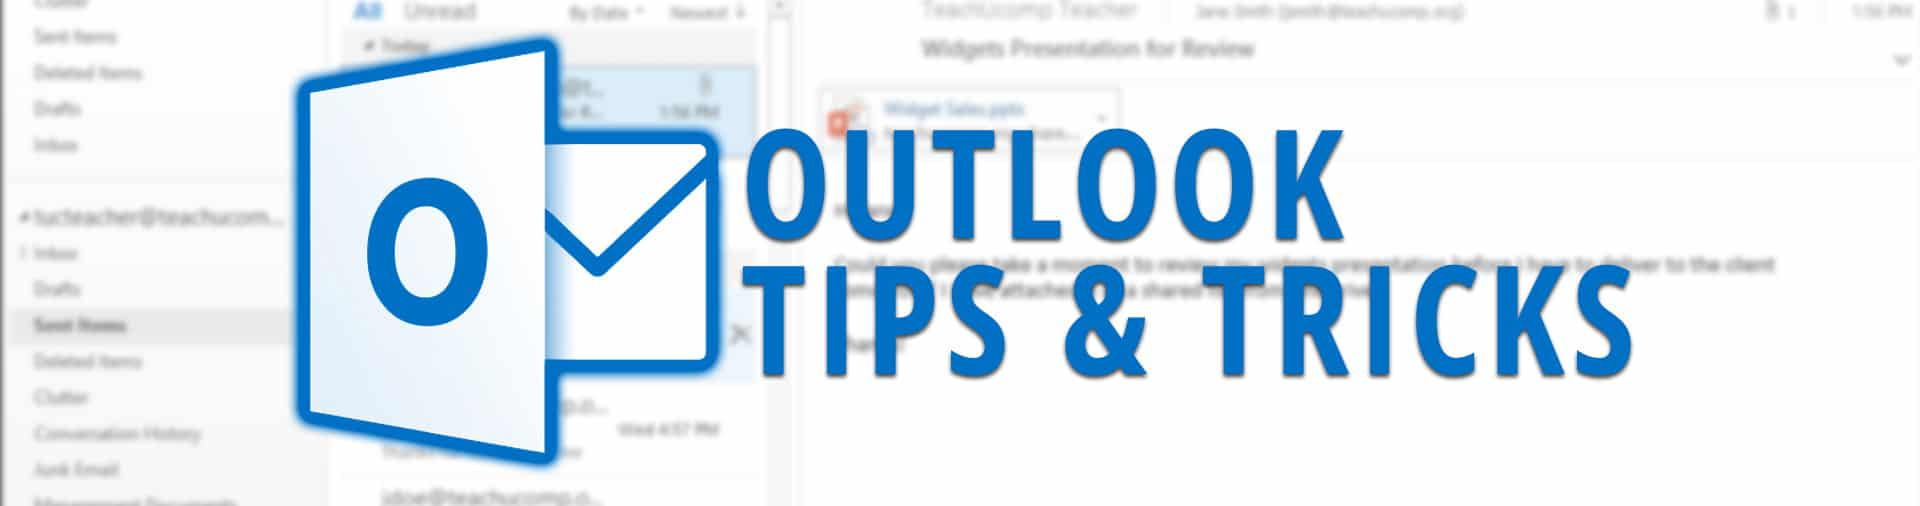 Get more out of Outlook with these simple tips